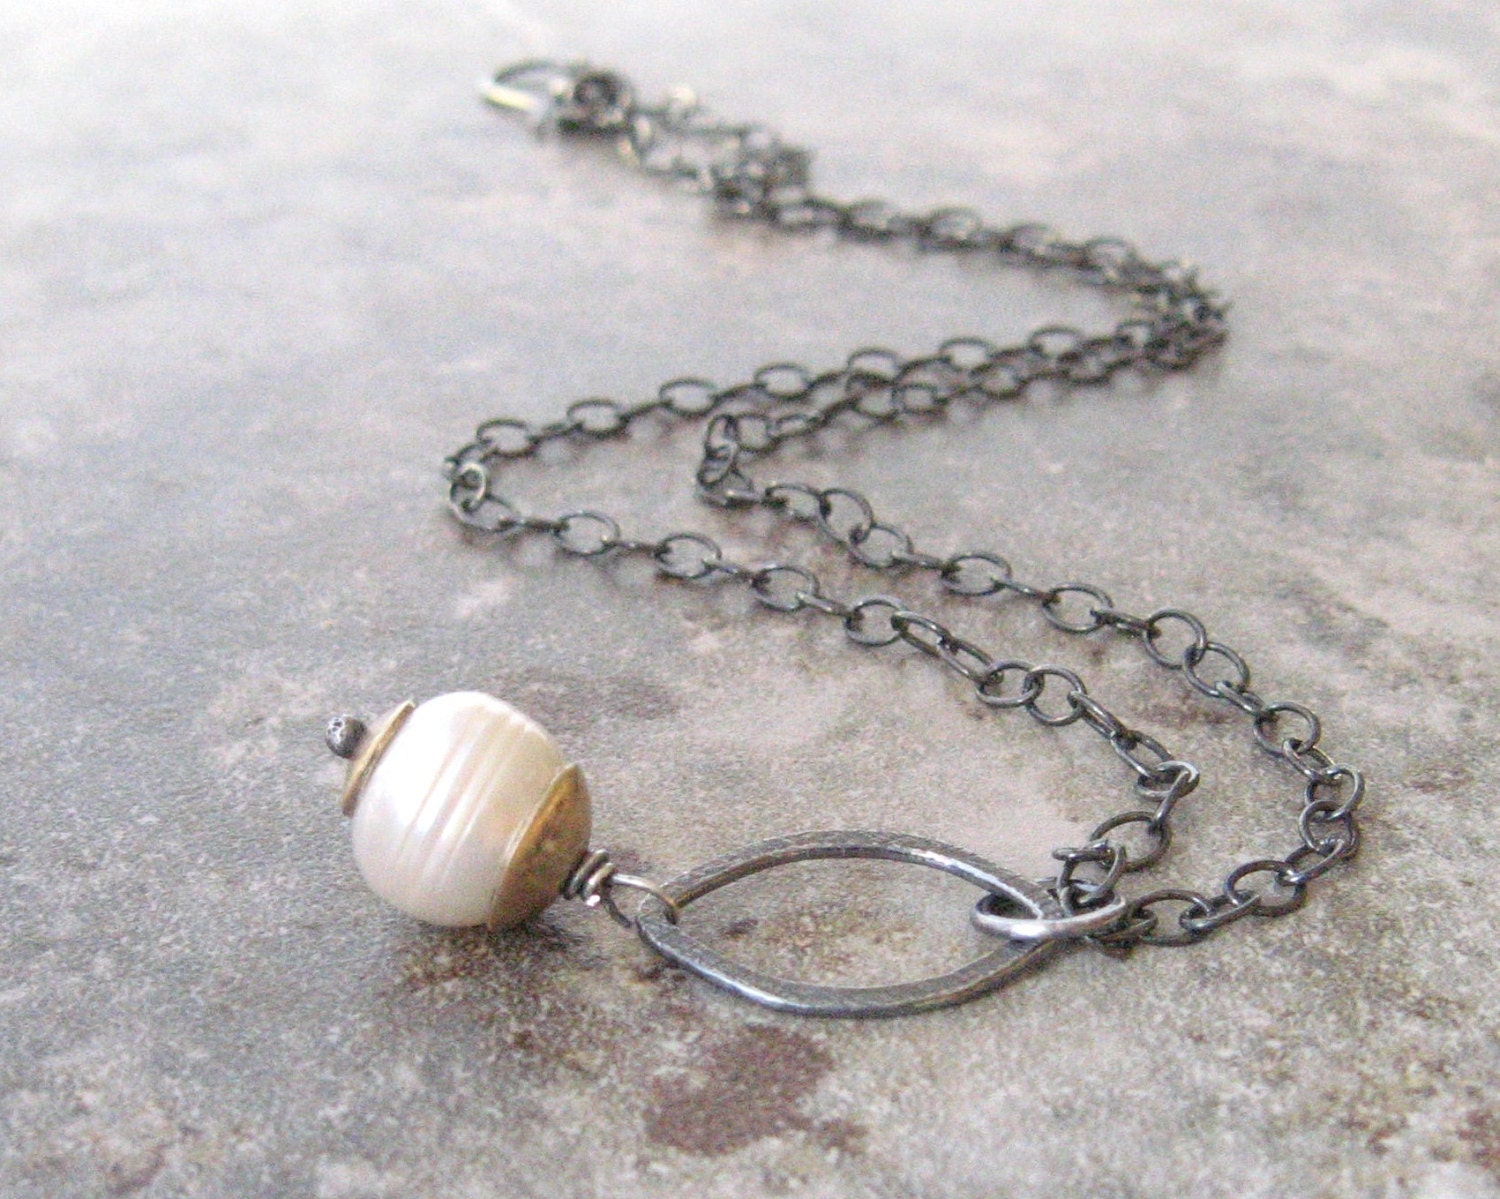 white pearl and silver pendant, rustic pendant necklace